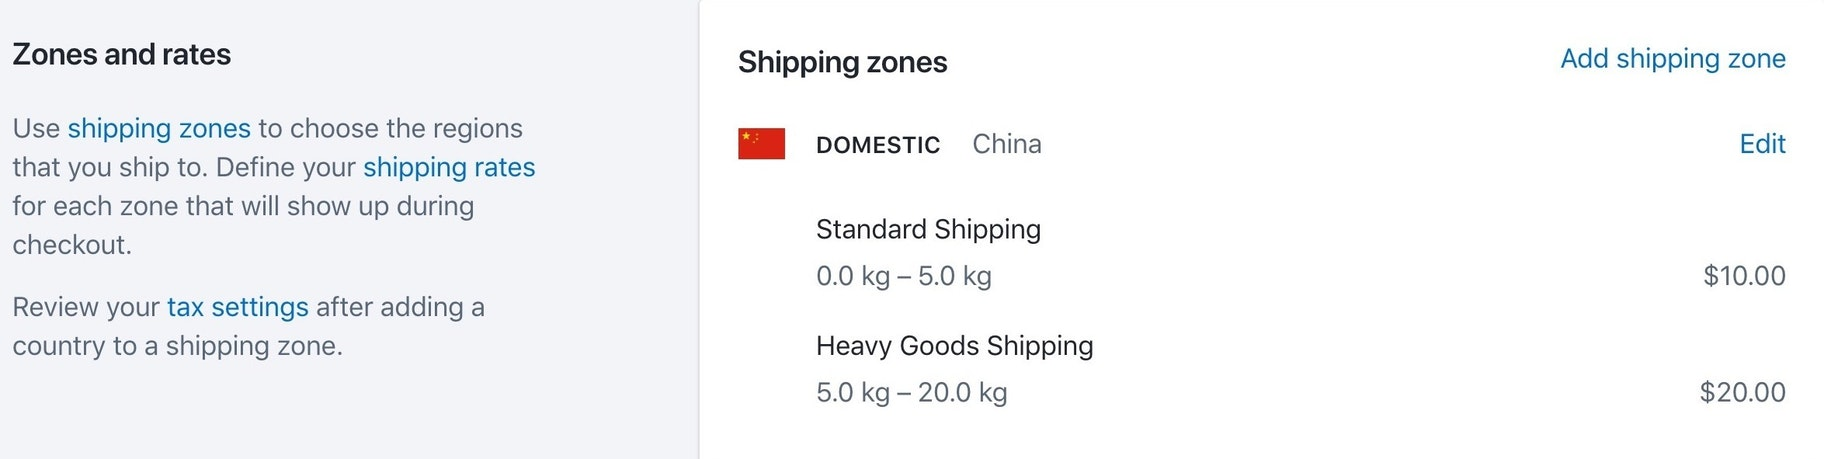 Shipping zones